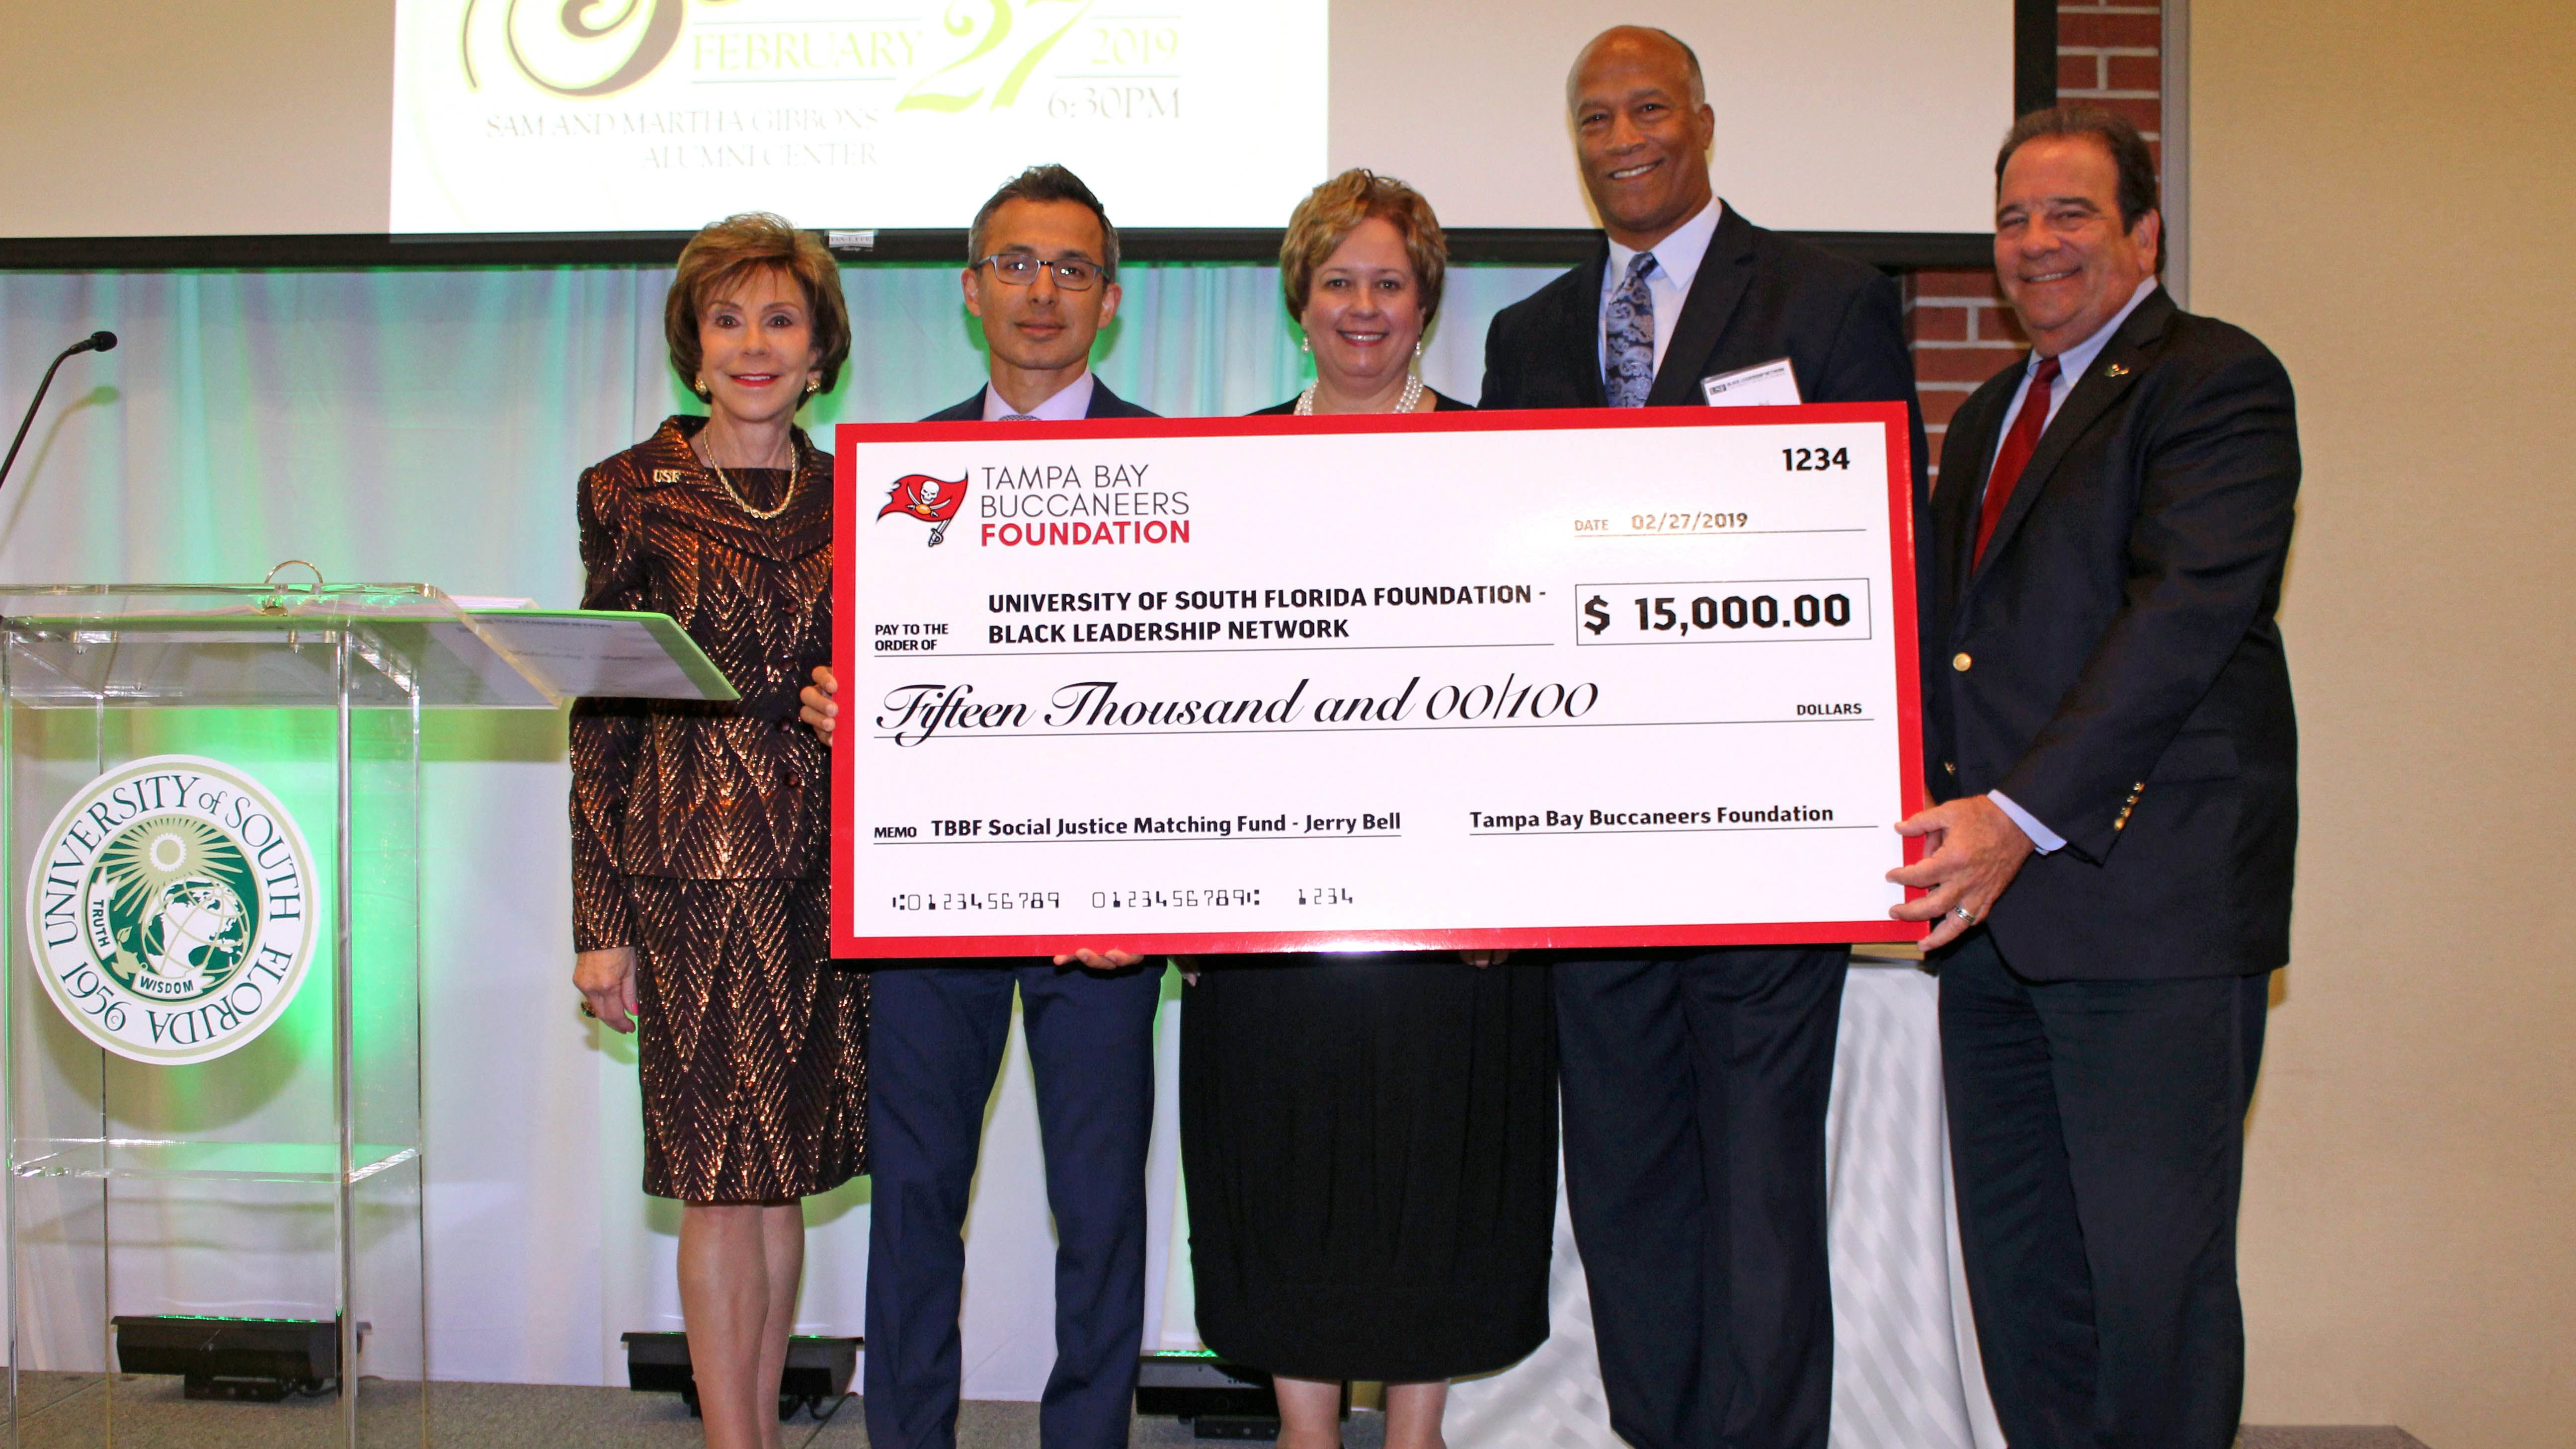 Tampa Bay Buccaneers Foundation Matches $15,000 Gift for the USF Black Leadership Network